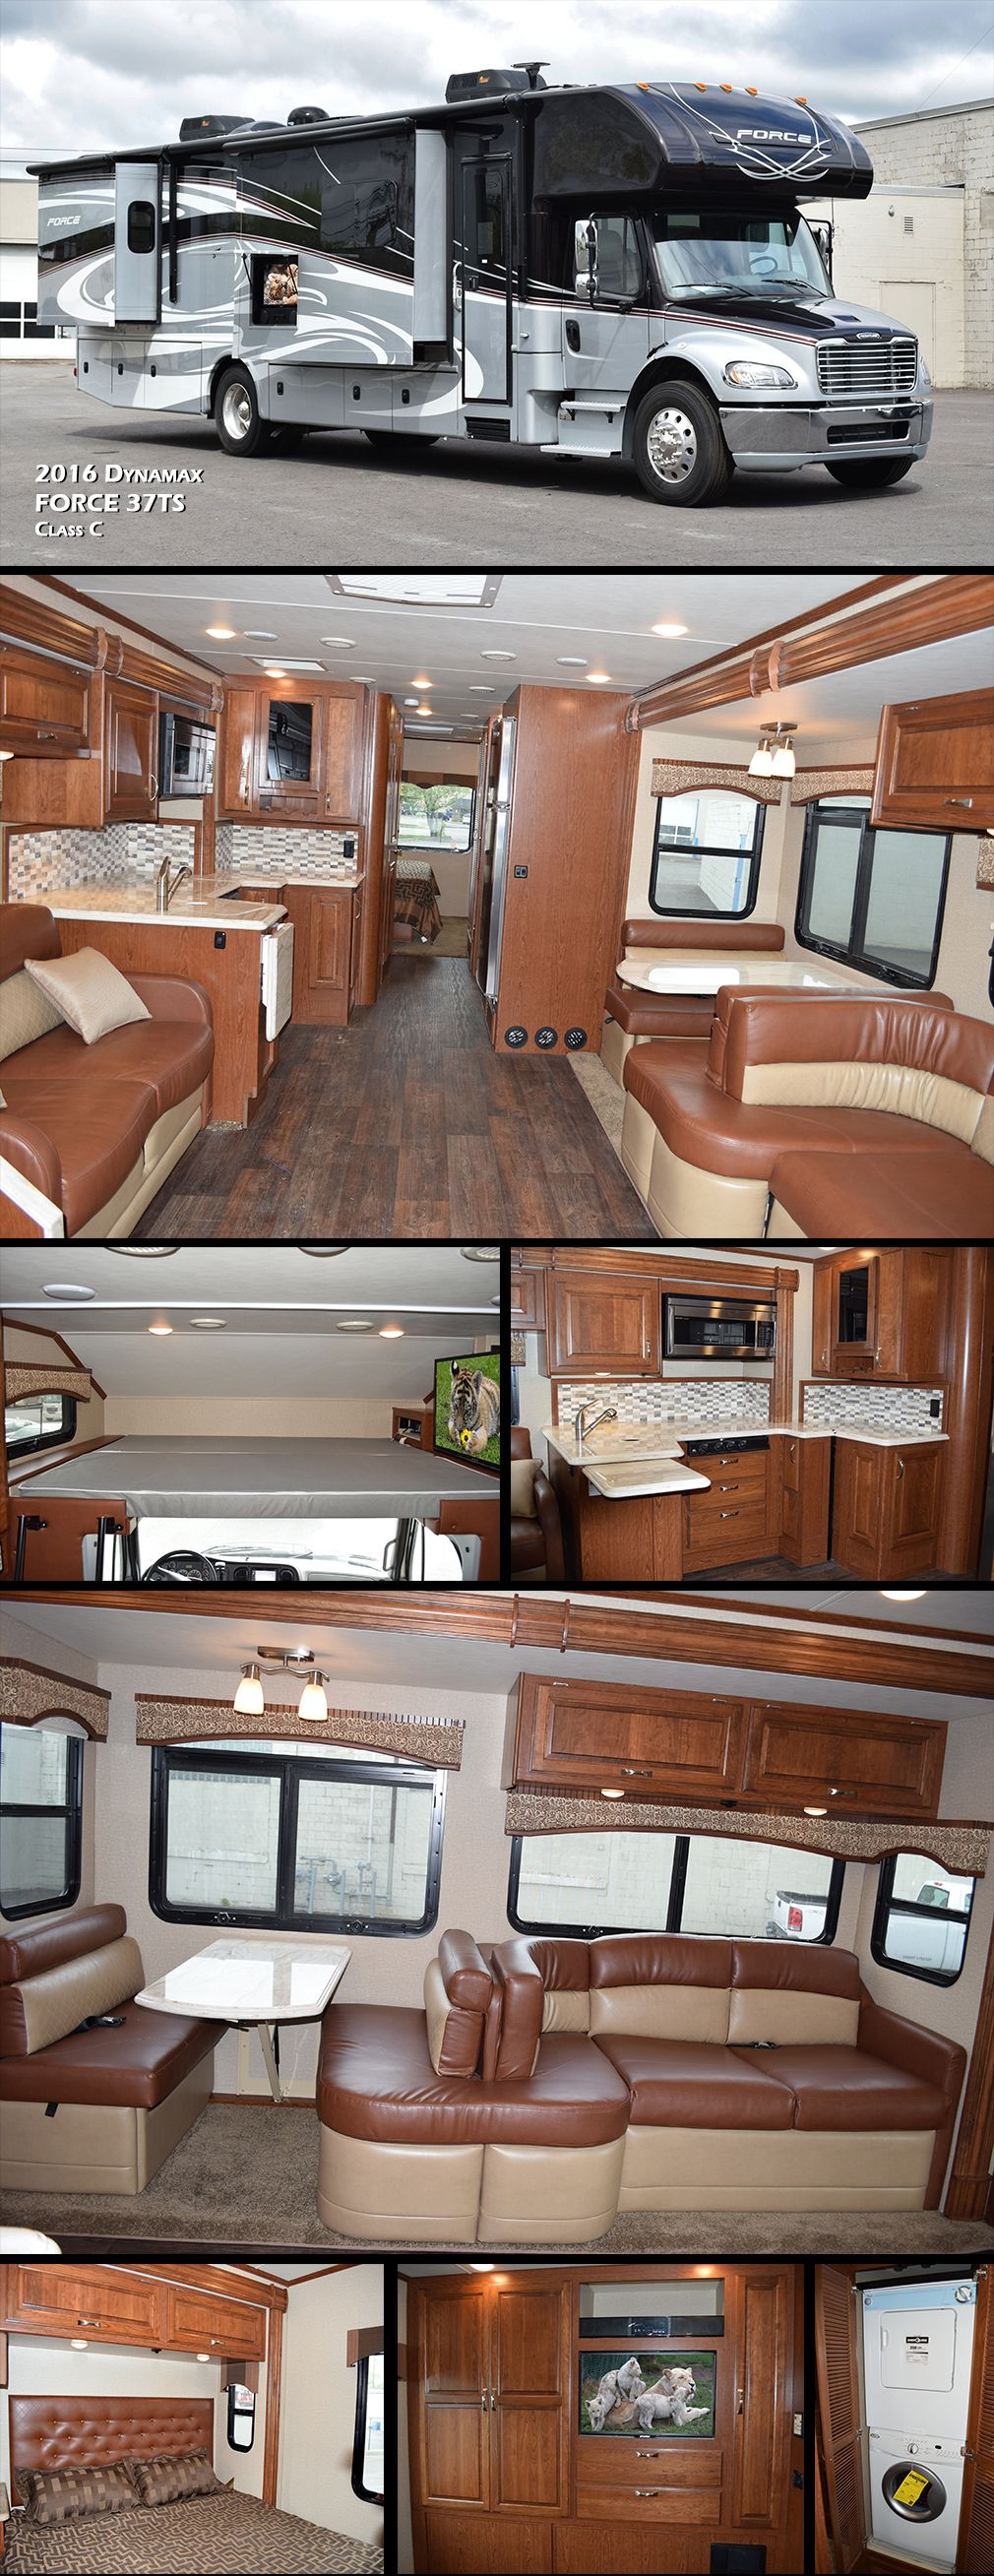 The all new 2016 Dynamax Force 37TS Super C bunk model is